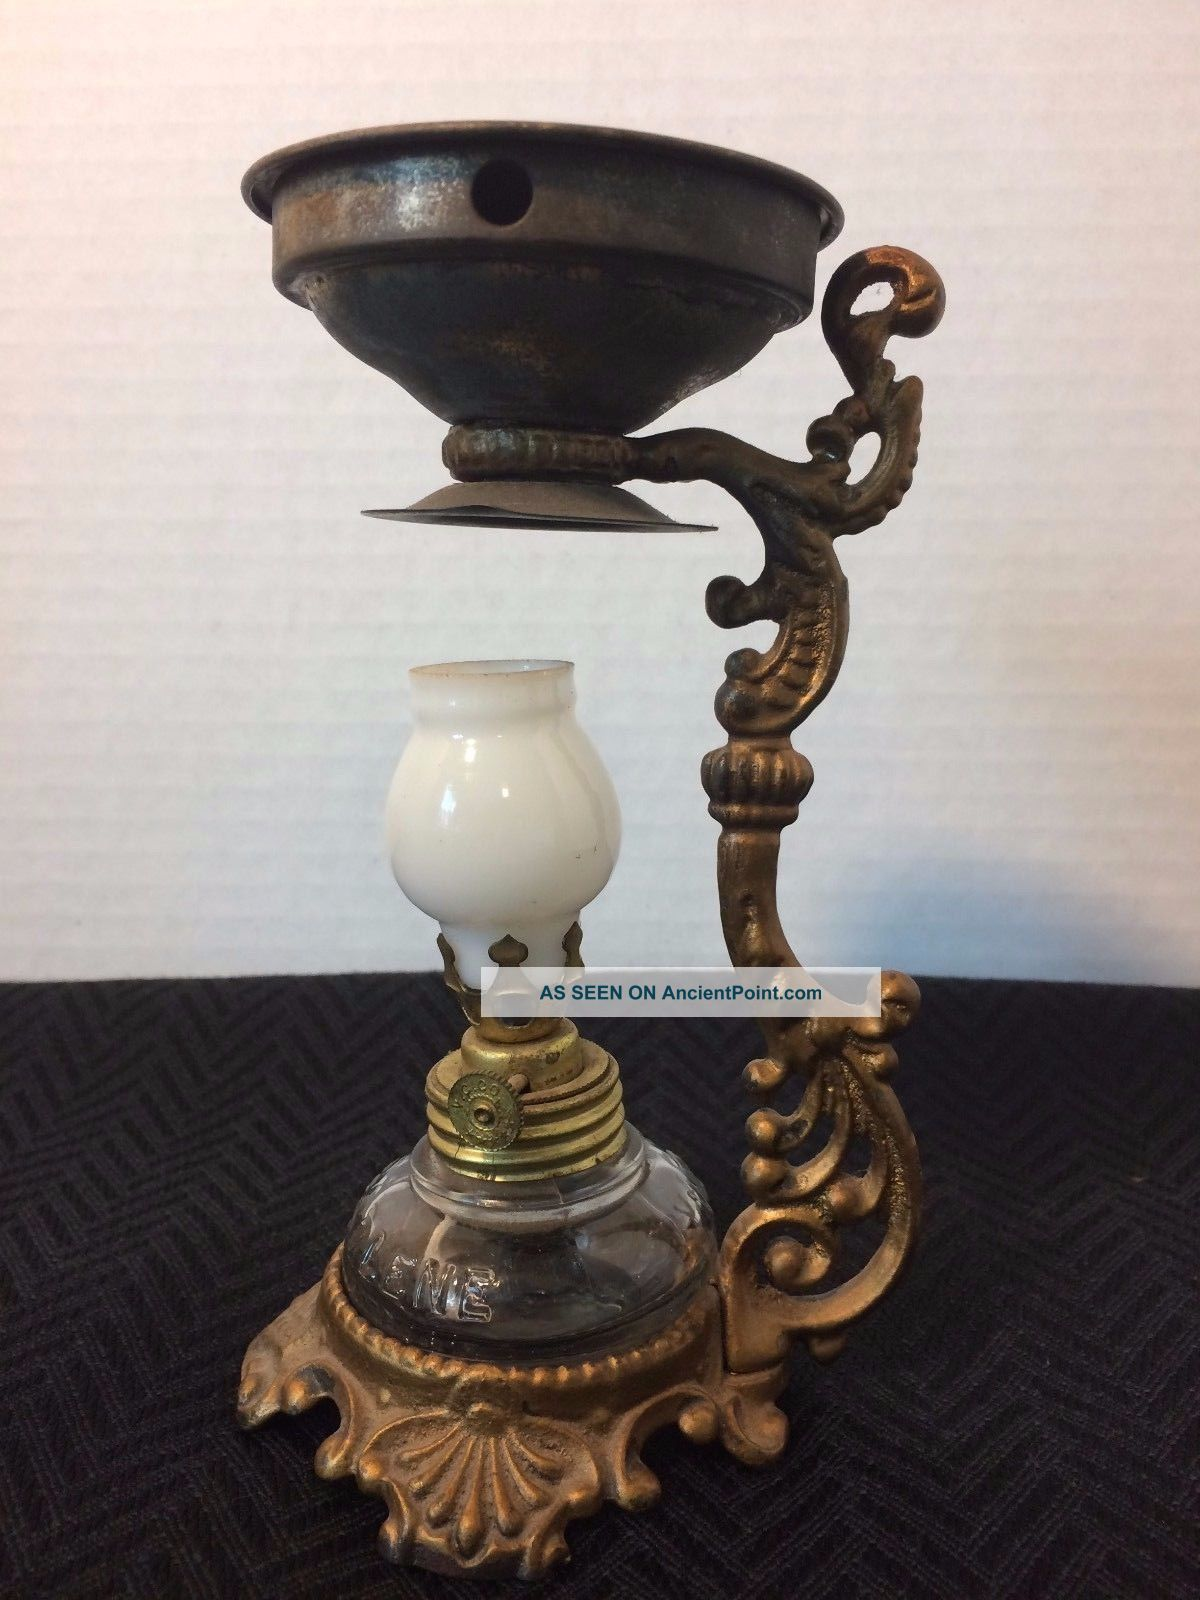 Antique Vapo - Cresolene Vaporizer Medicine Oil Lamp Patents Dates 1885 - 1888 Other Medical Antiques photo